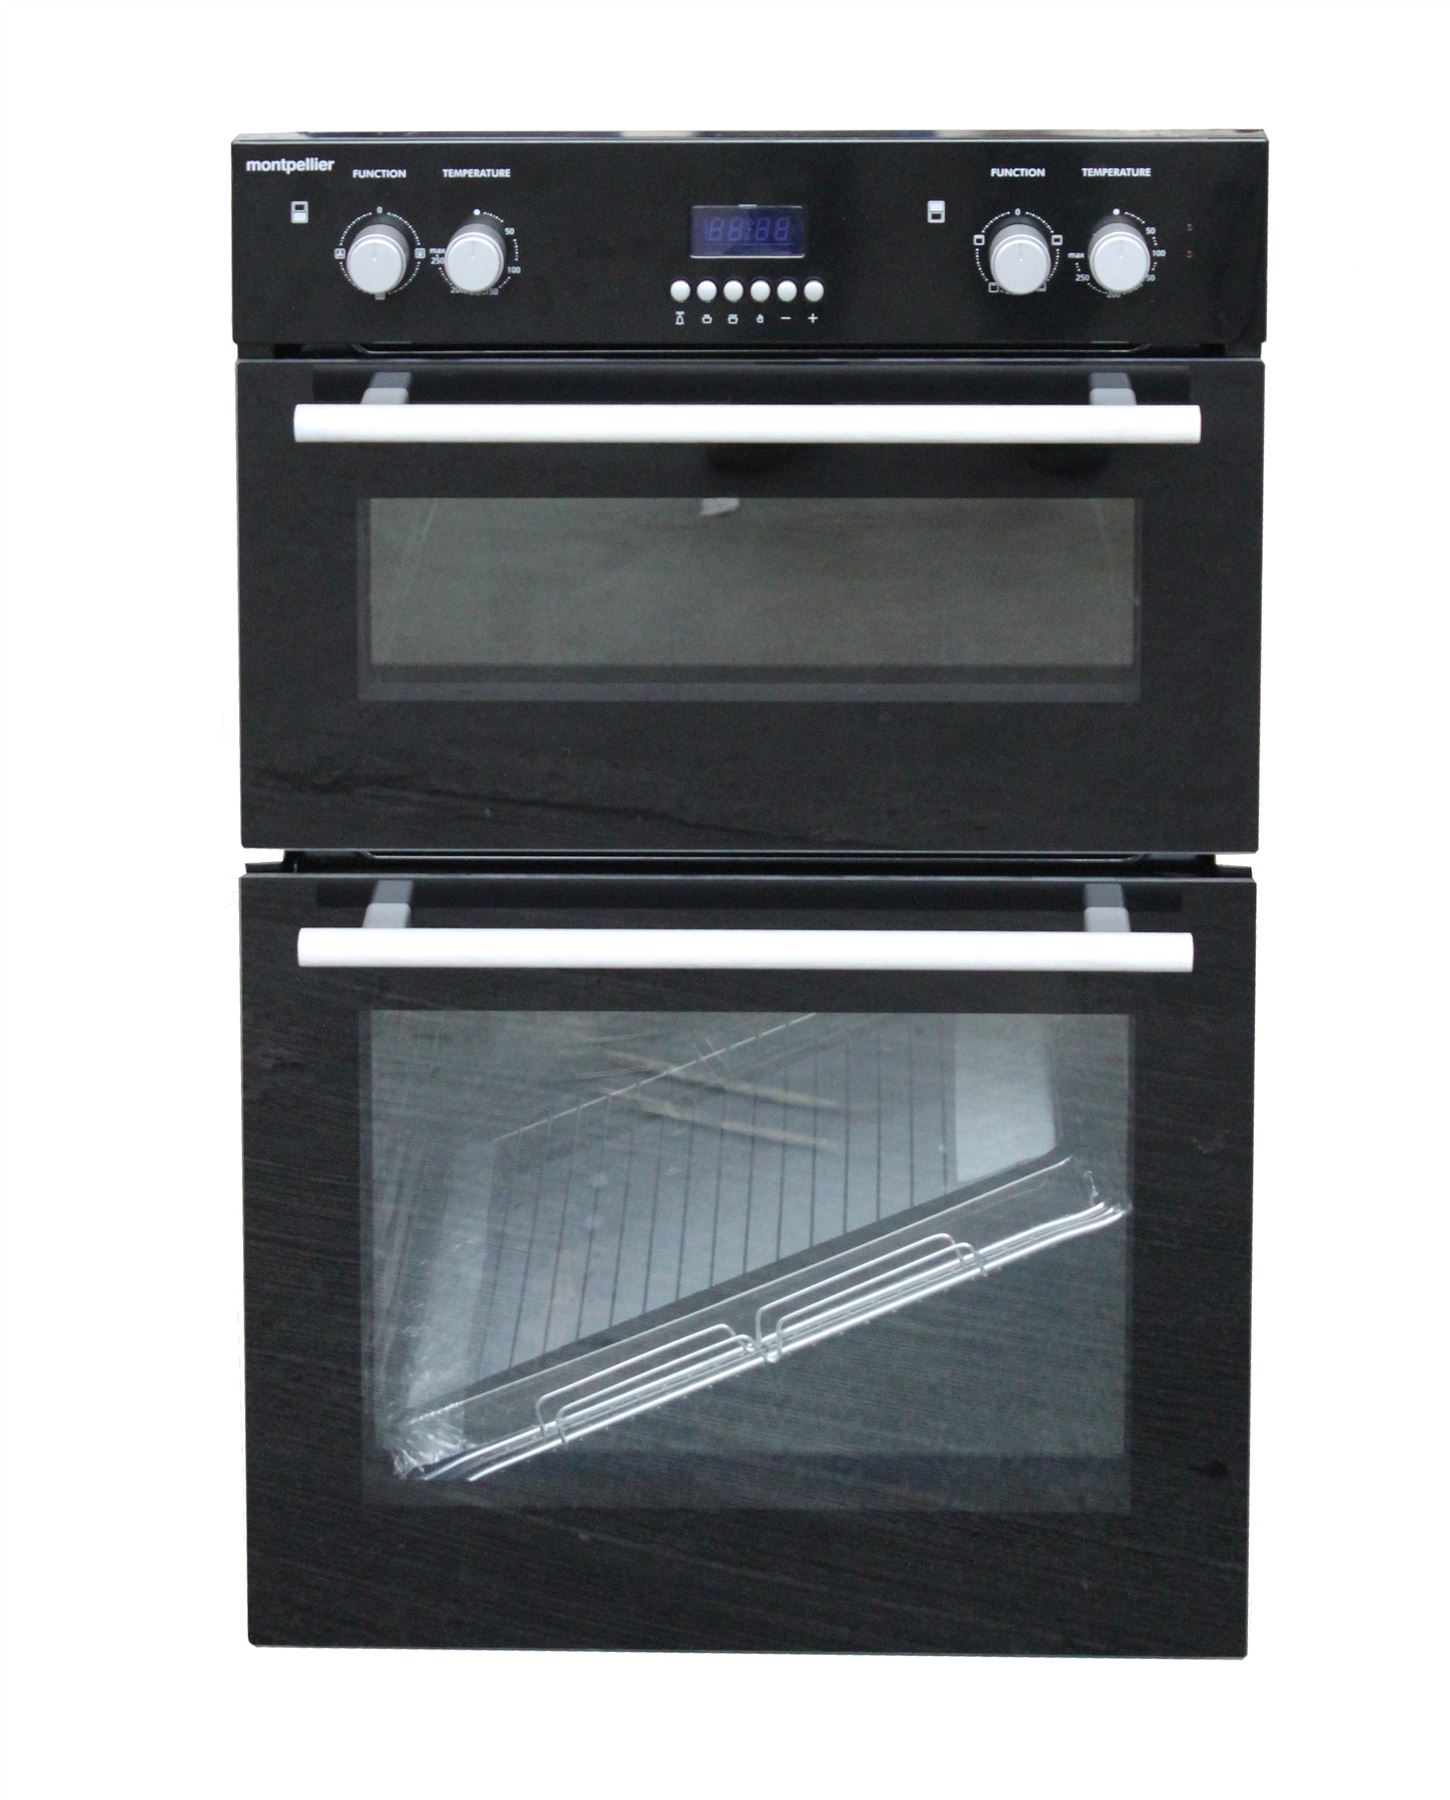 montpellier mdo90x built in double electric fan oven black. Black Bedroom Furniture Sets. Home Design Ideas